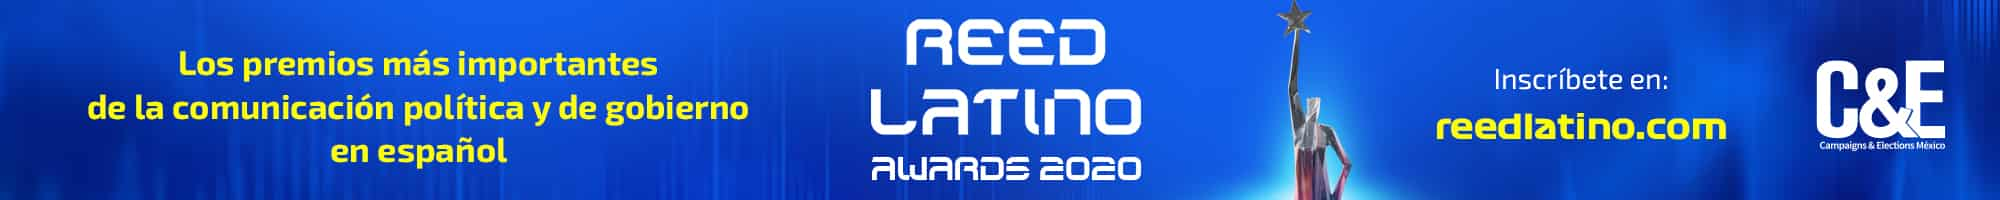 Banner REED LATINO 2000 x 200 px (1)